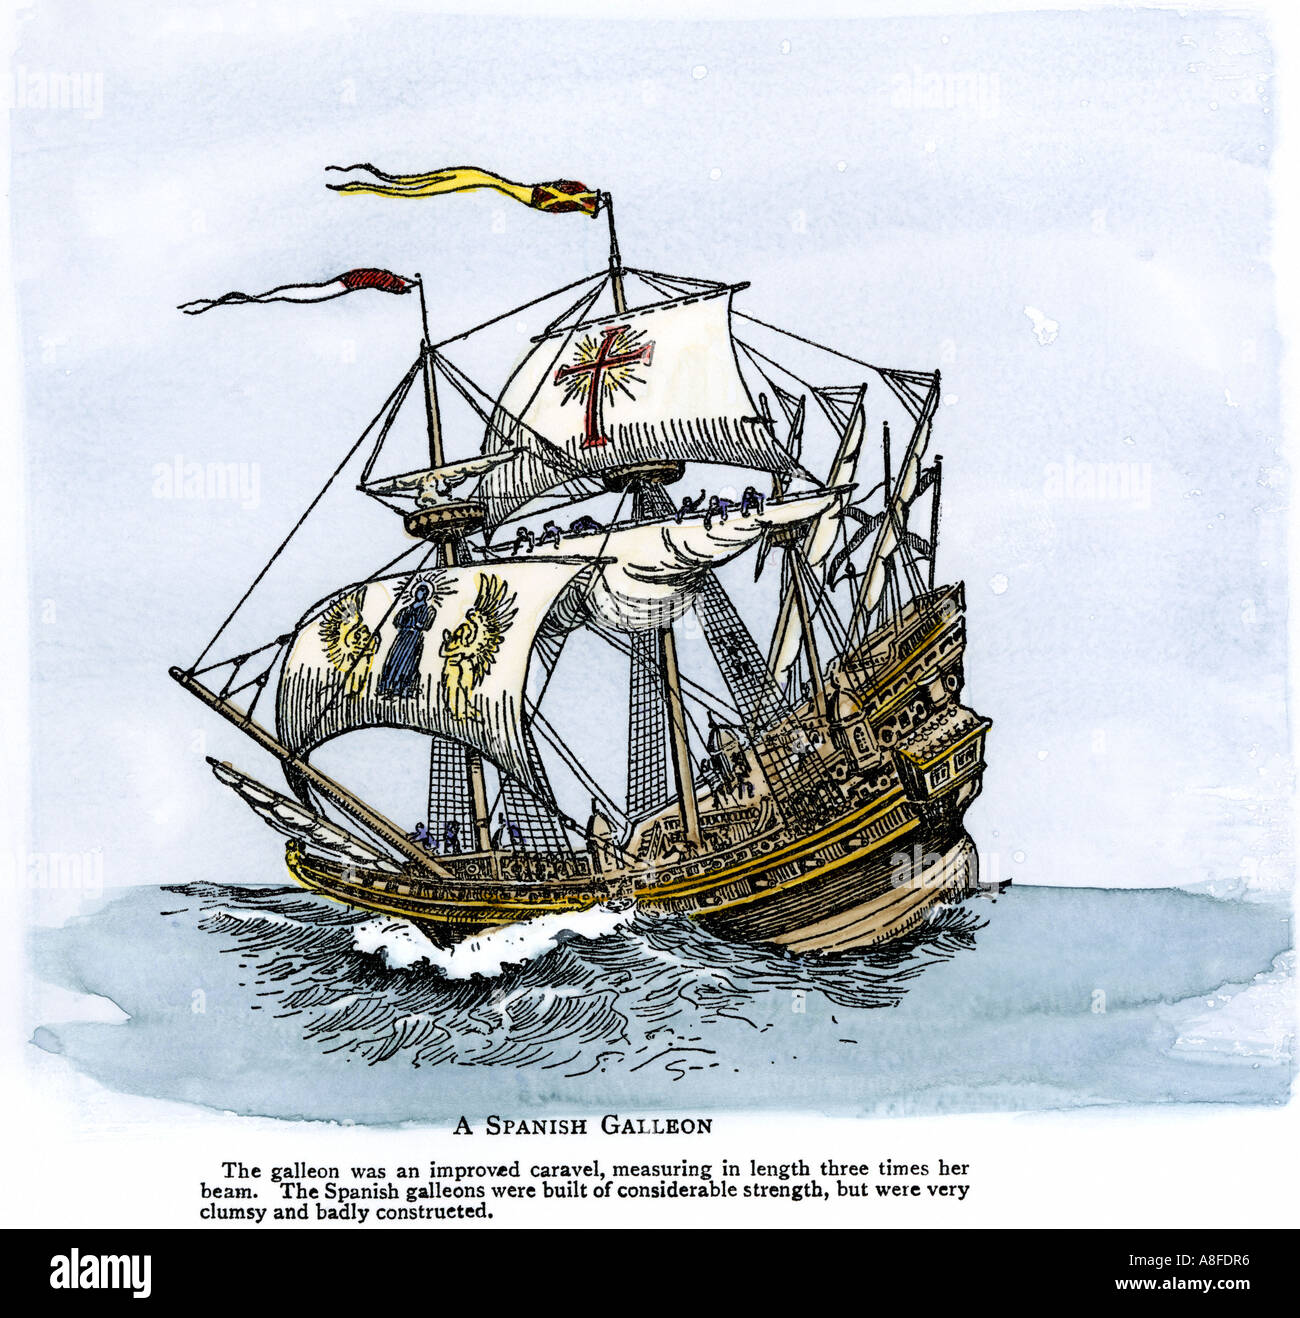 Spanish galleon an improved caravel its length three times its width spanish galleon an improved caravel its length three times its width sailed in the 1500s and 1600s publicscrutiny